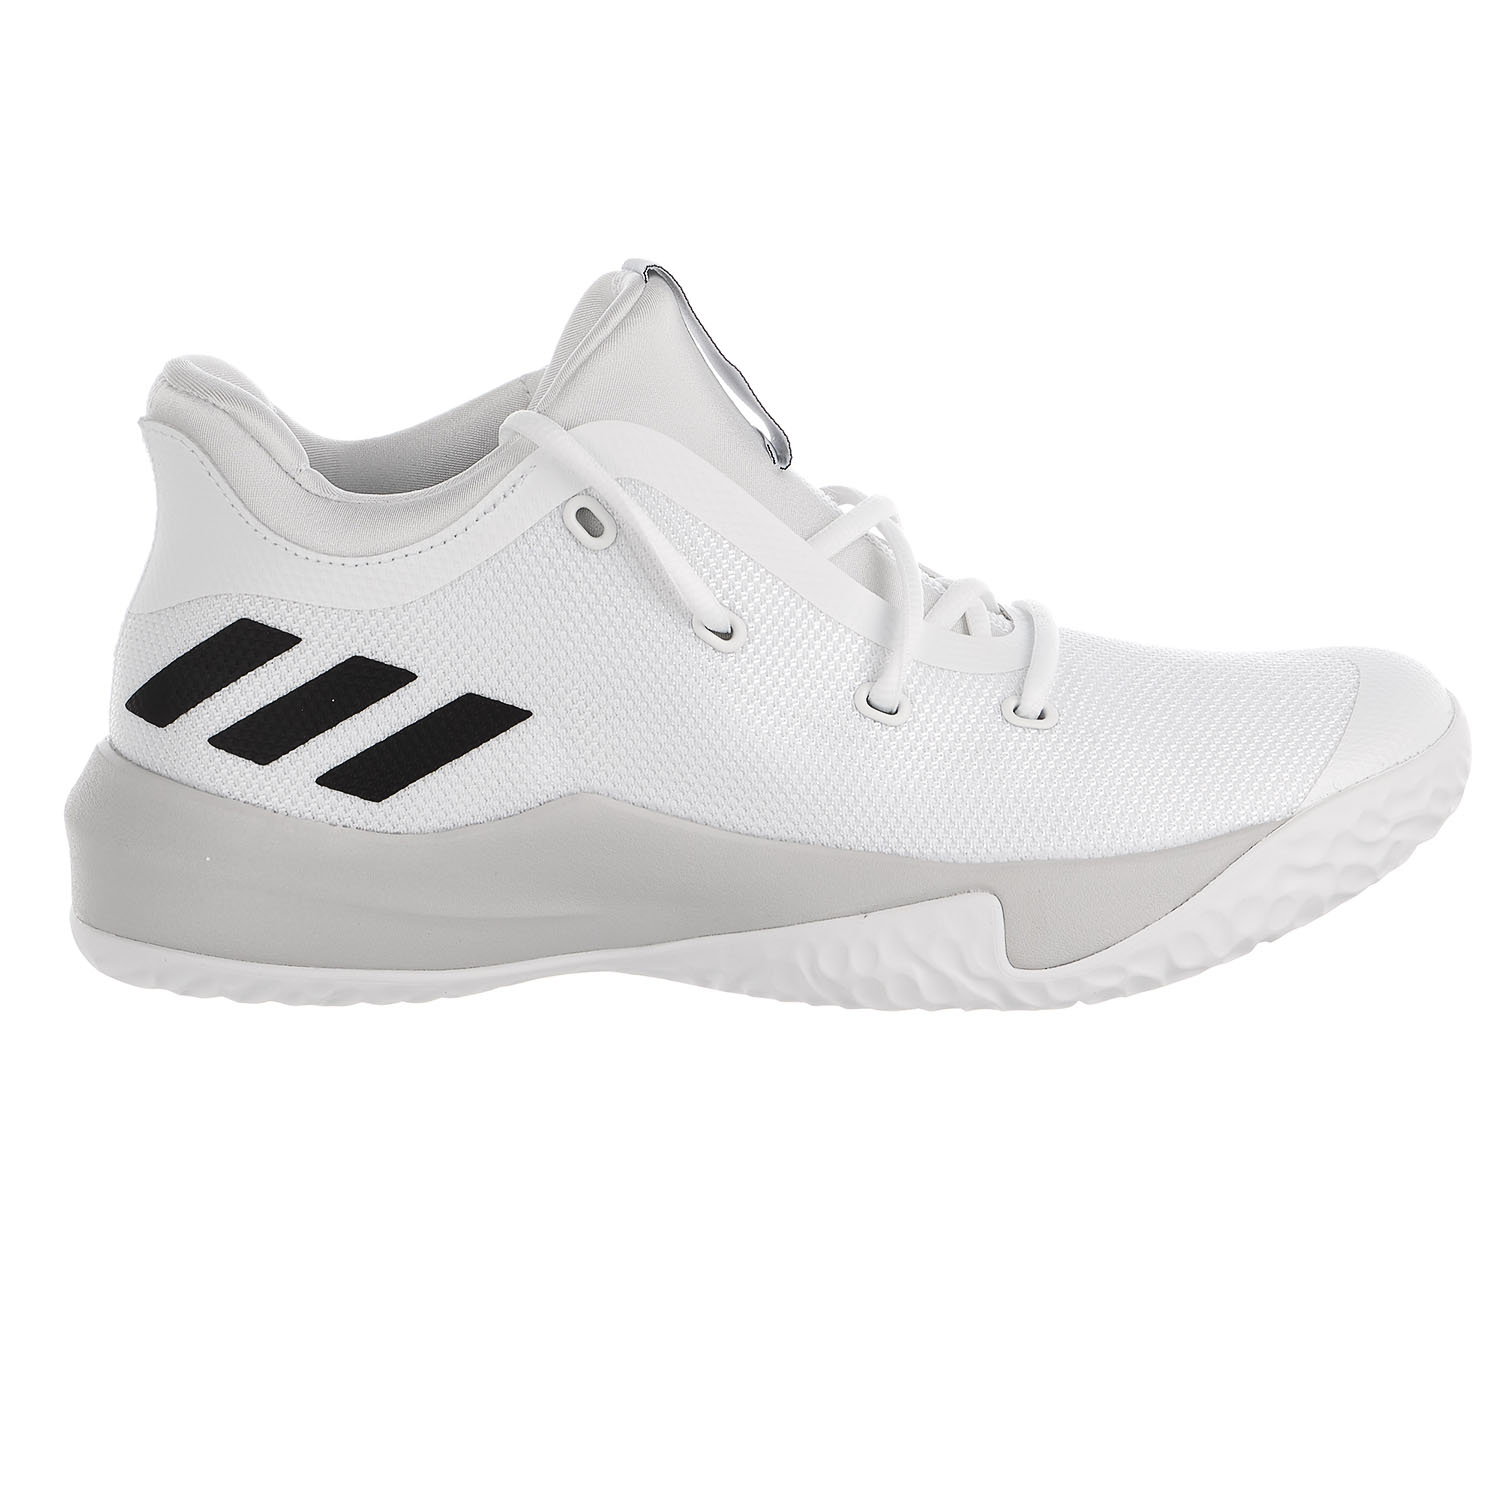 0c6f5c674761 ... discount adidas rise up 2 basketball shoe white light solid grey  heather core black 3c9a4 6943e